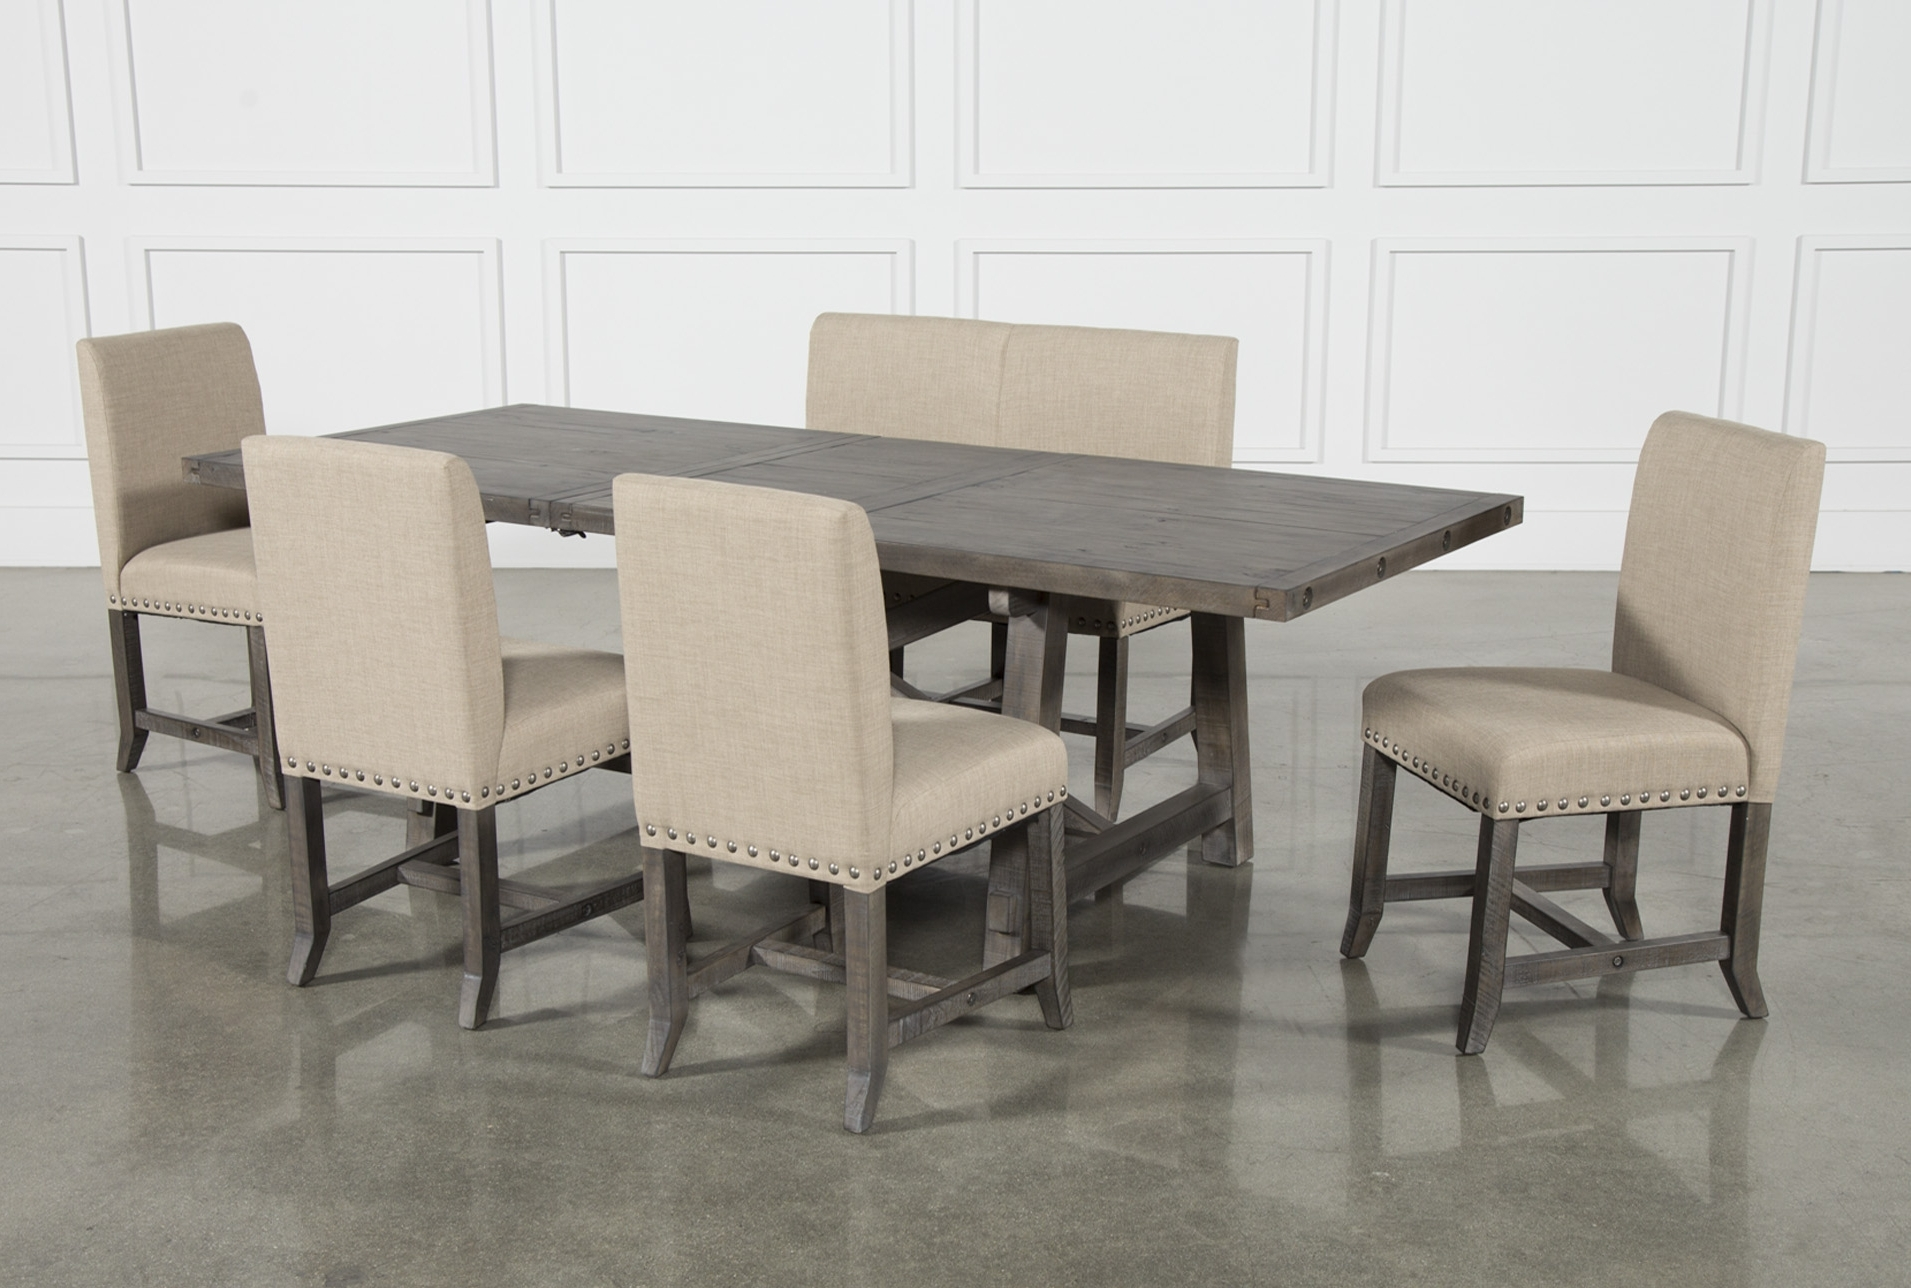 Jaxon Grey 6 Piece Rectangle Extension Dining Sets With Bench & Uph Chairs For Fashionable Jaxon Grey 6 Piece Rectangle Extension Dining Set W/bench & Uph (Gallery 2 of 25)